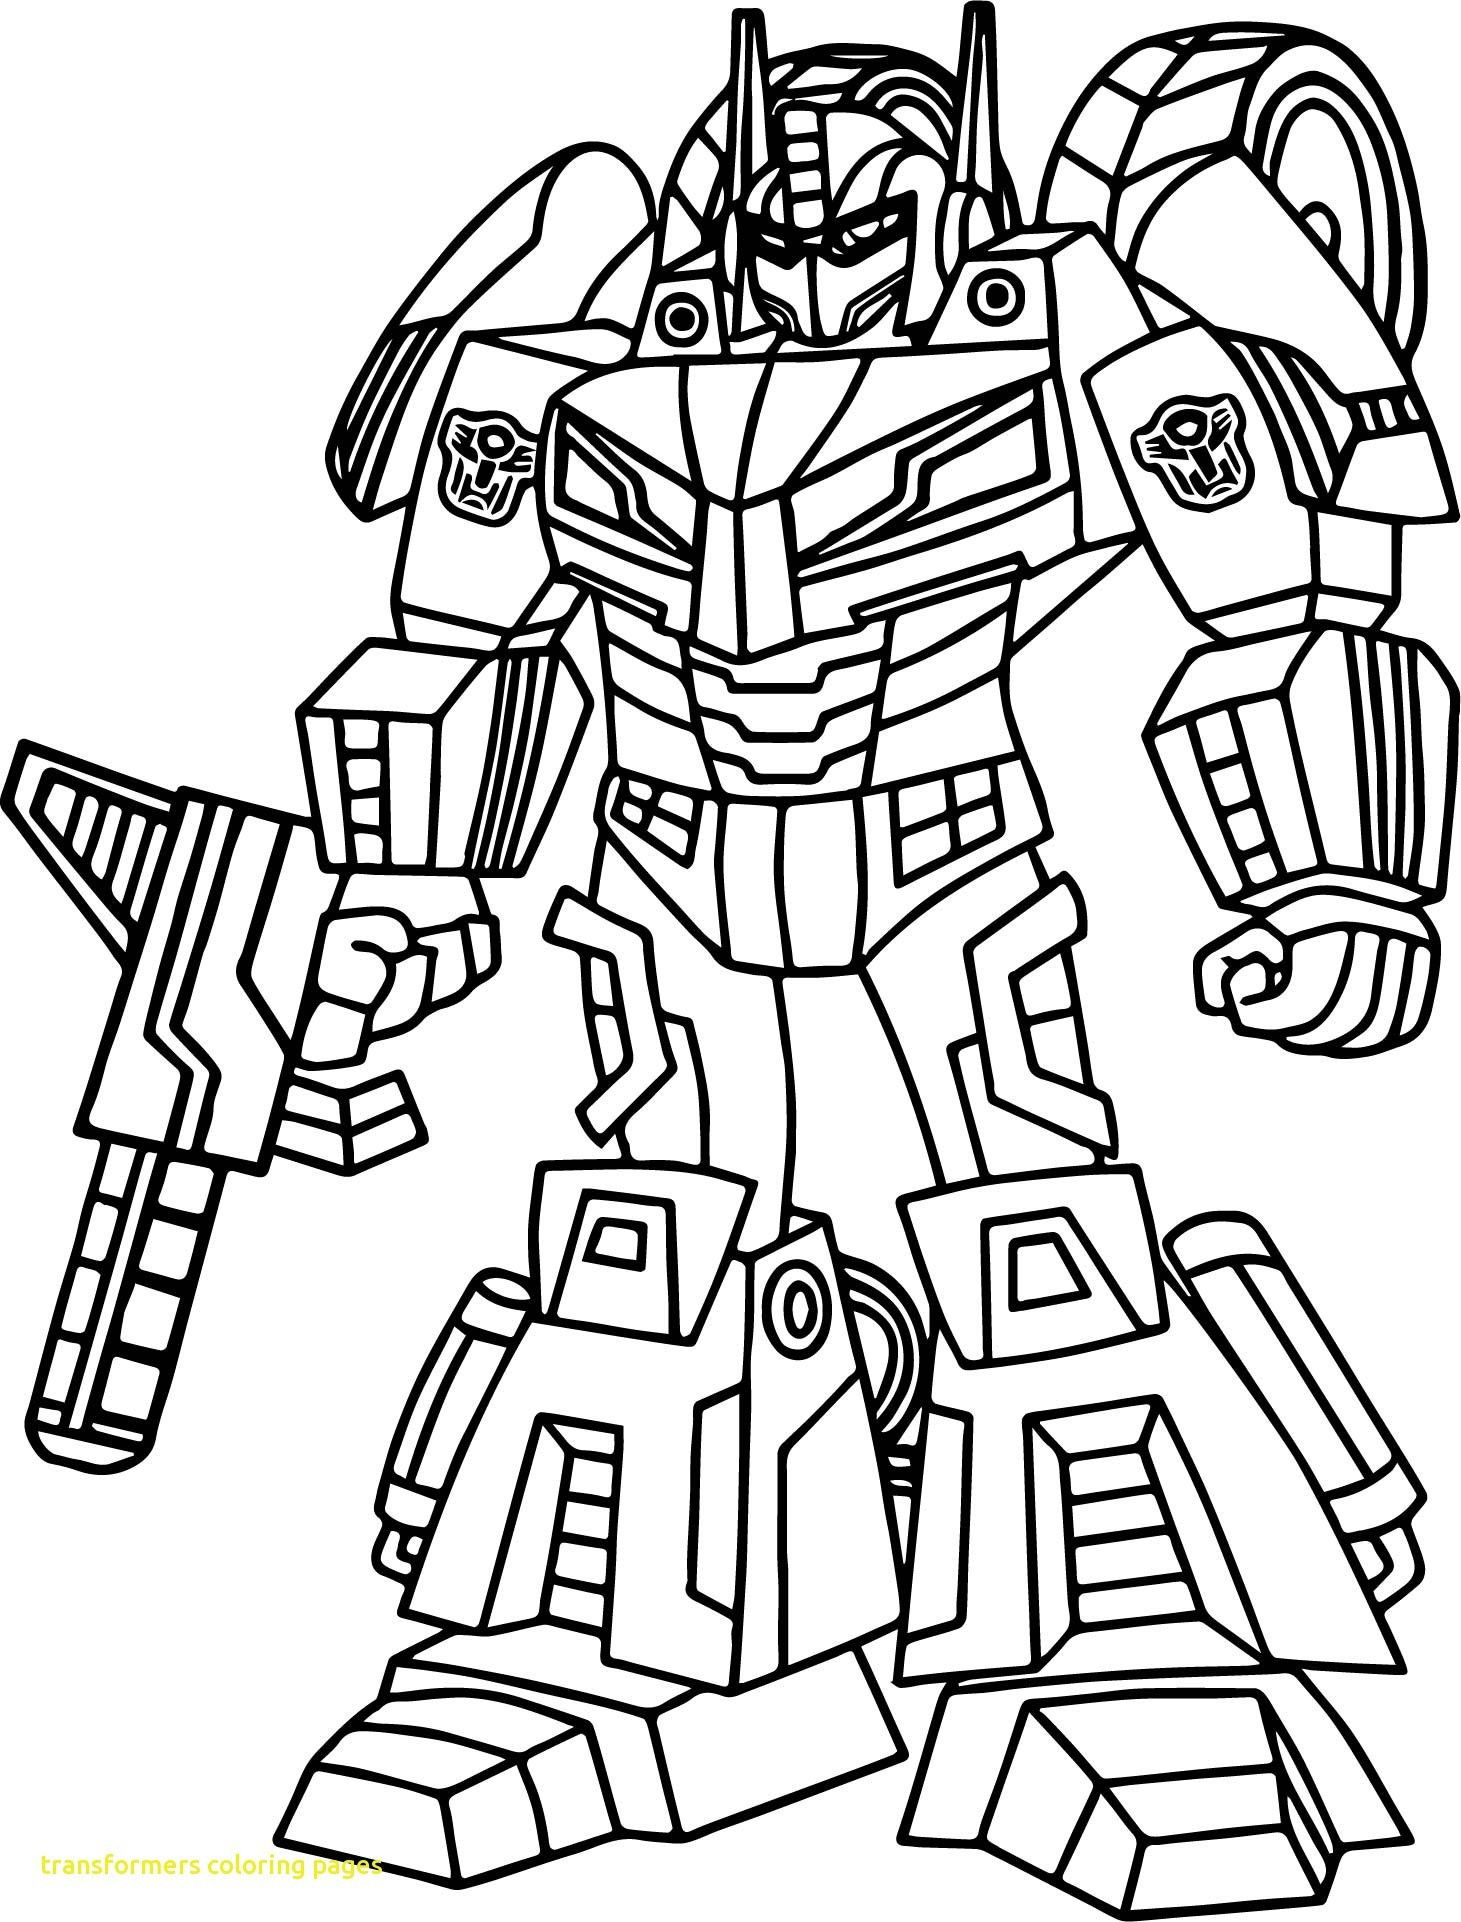 transformers cyberverse coloring pages get 29 disegni da colorare di transformers coloring cyberverse transformers pages